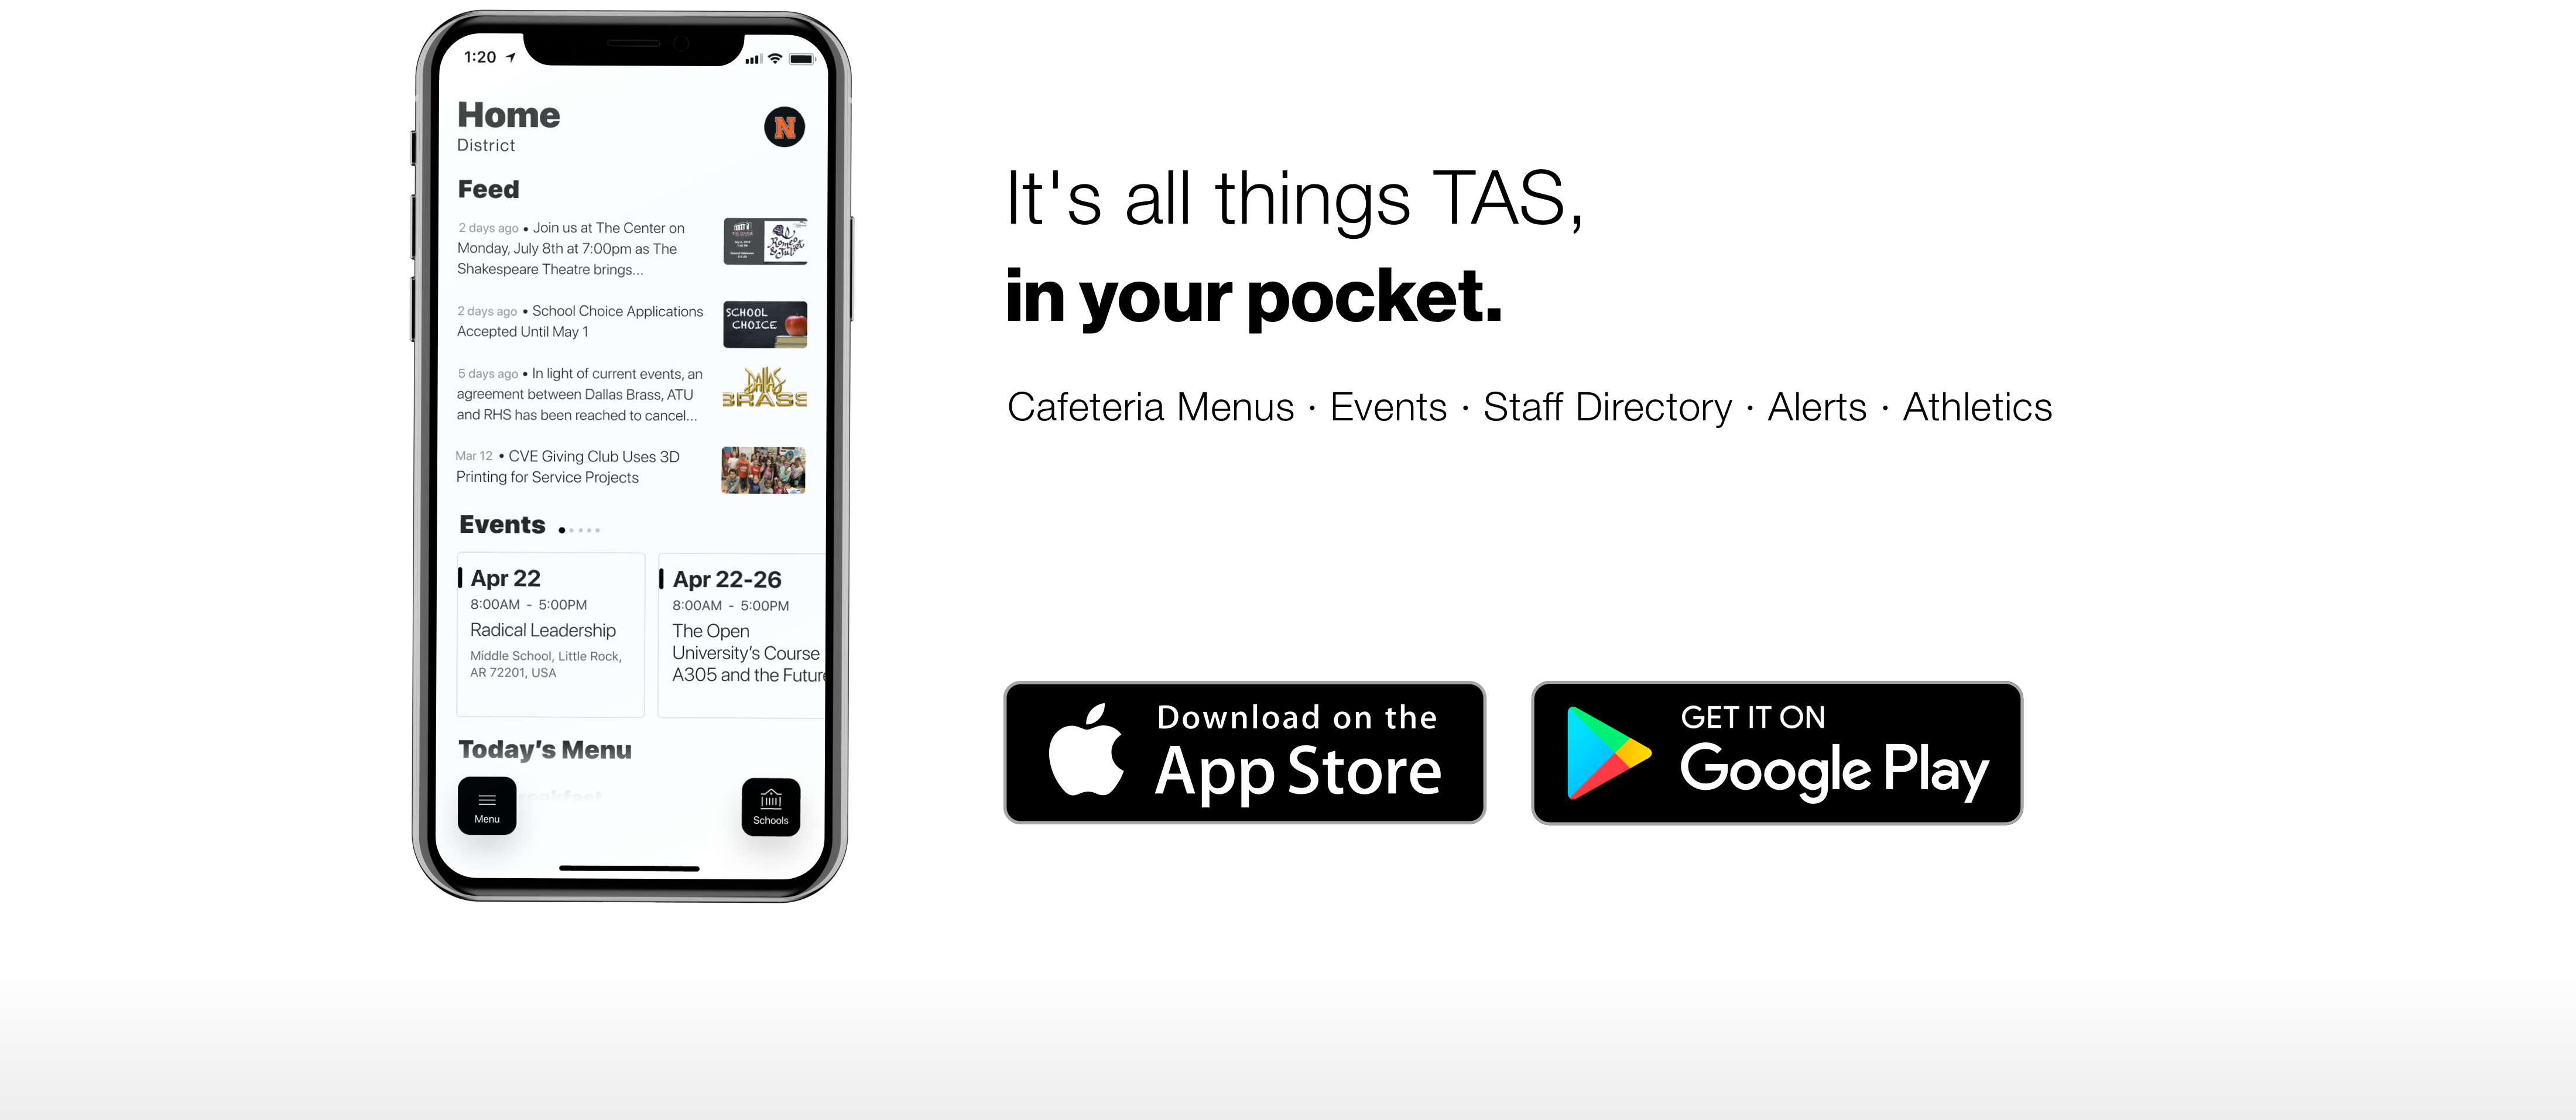 It's all things TAS, in your pocket.